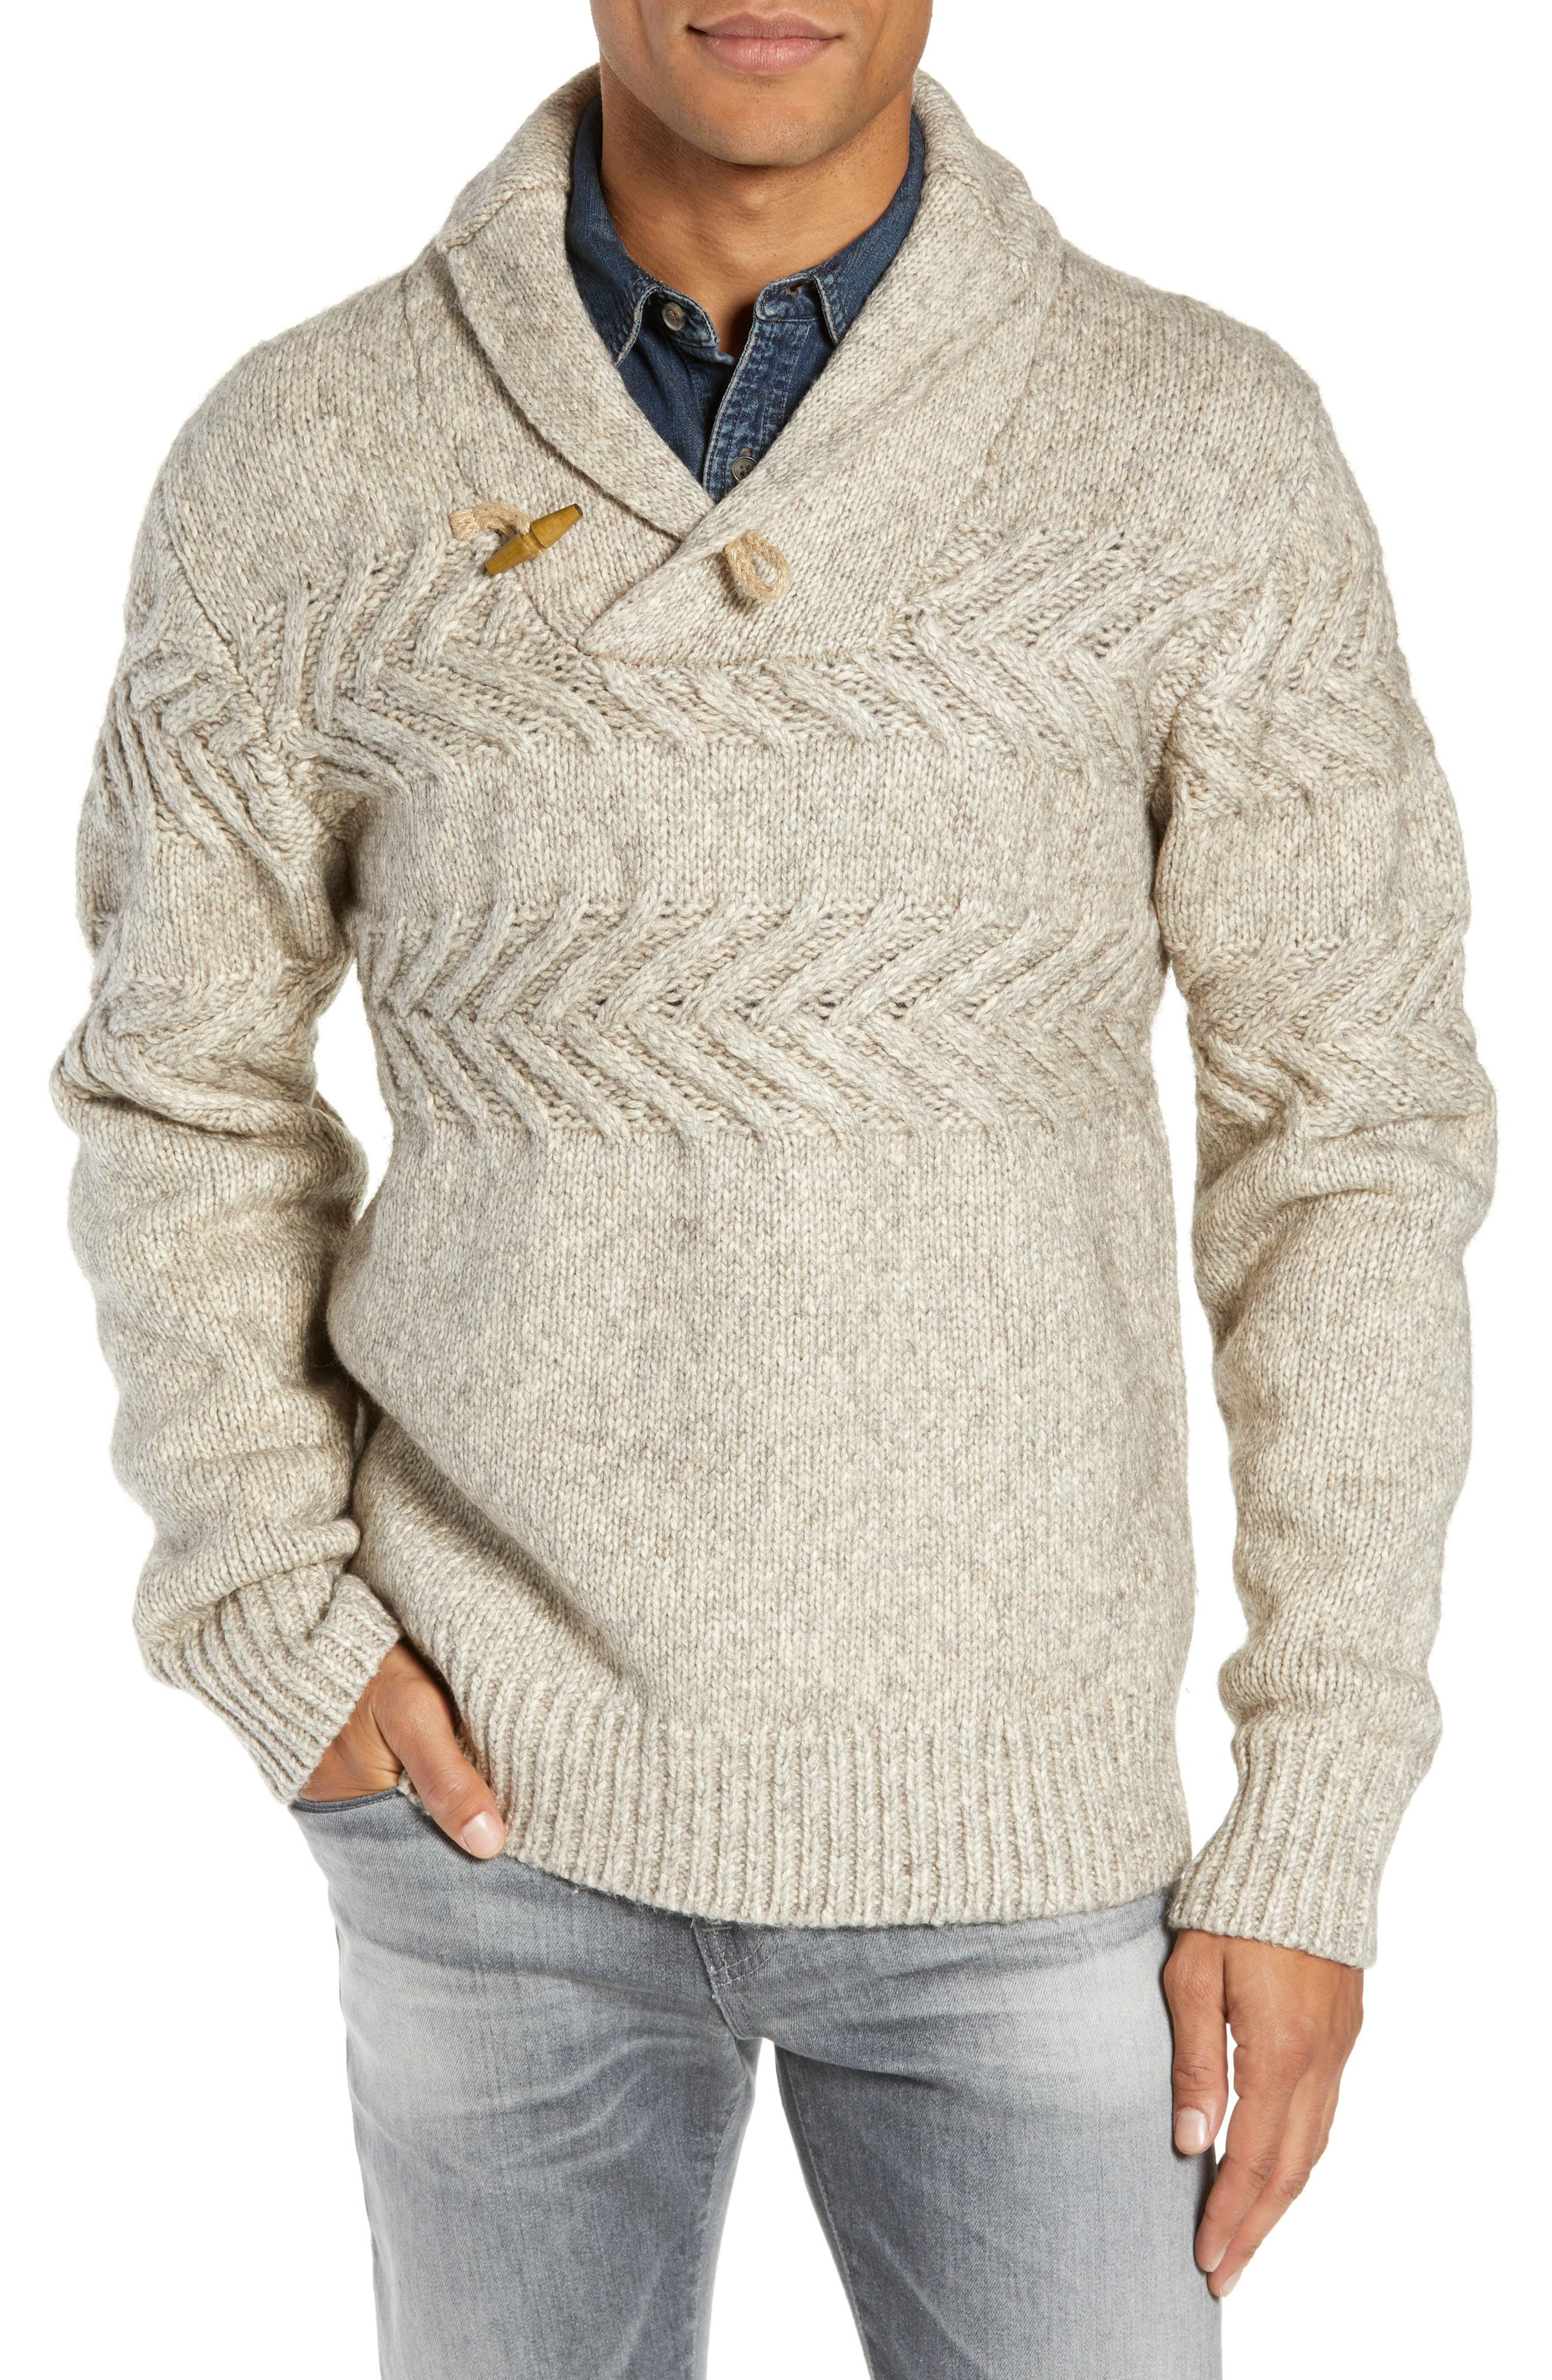 ca39c62ea5887 Lyst - Schott Nyc Heathered Shawl Collar Sweater in Natural for Men